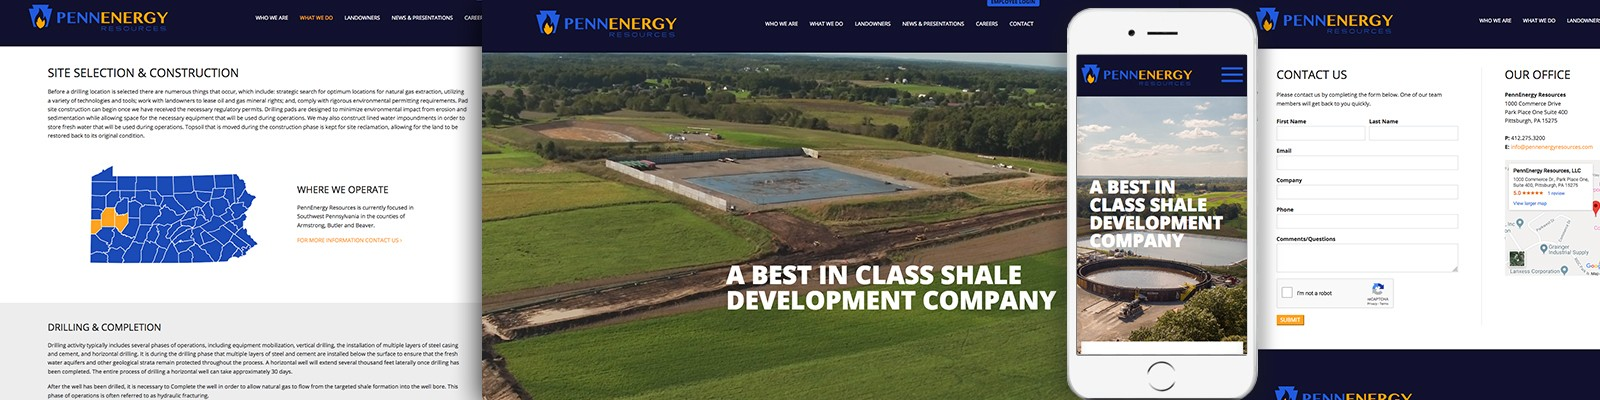 Penn Energy Resources